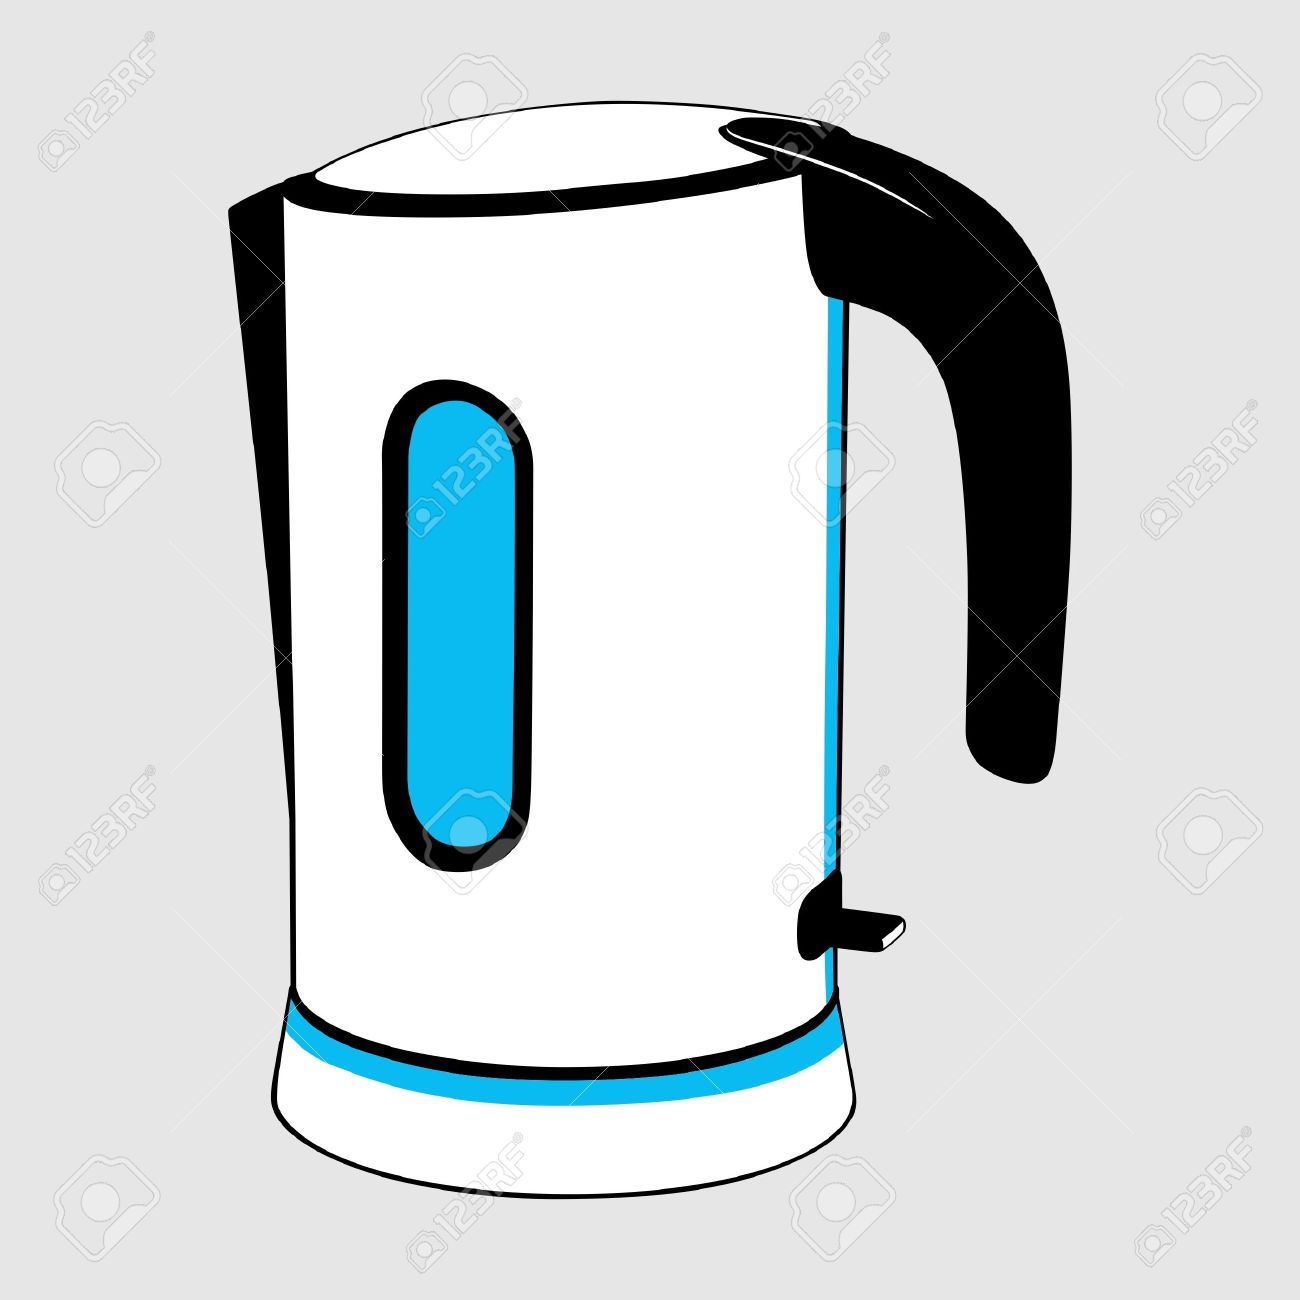 Electric Kettle Royalty Free Cliparts, Vectors, And Stock.